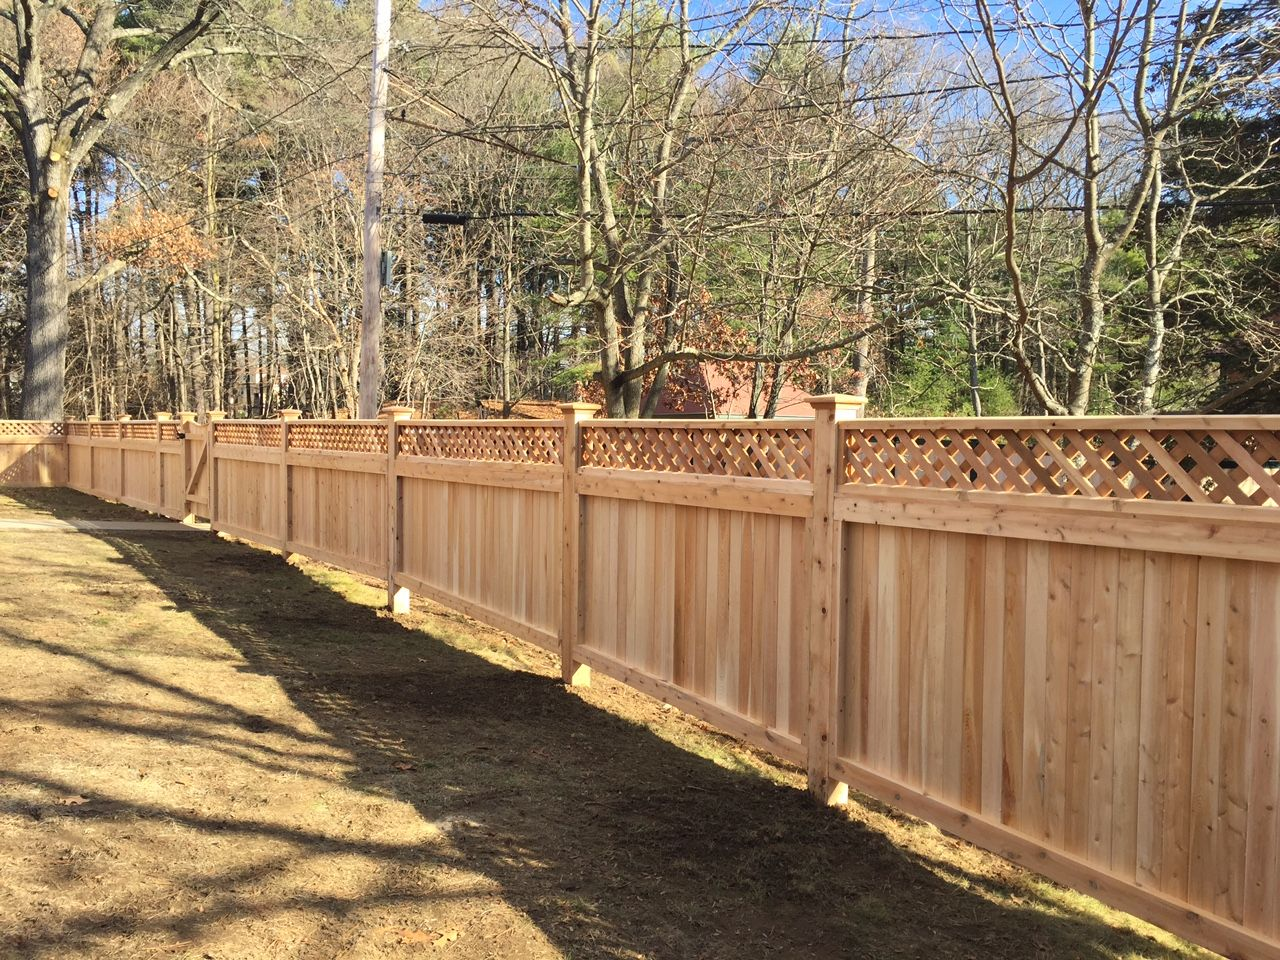 Diamond lattice top cedar fence over a universal tongue and groove diamond lattice top cedar fence over a universal tongue and groove base baanklon Choice Image